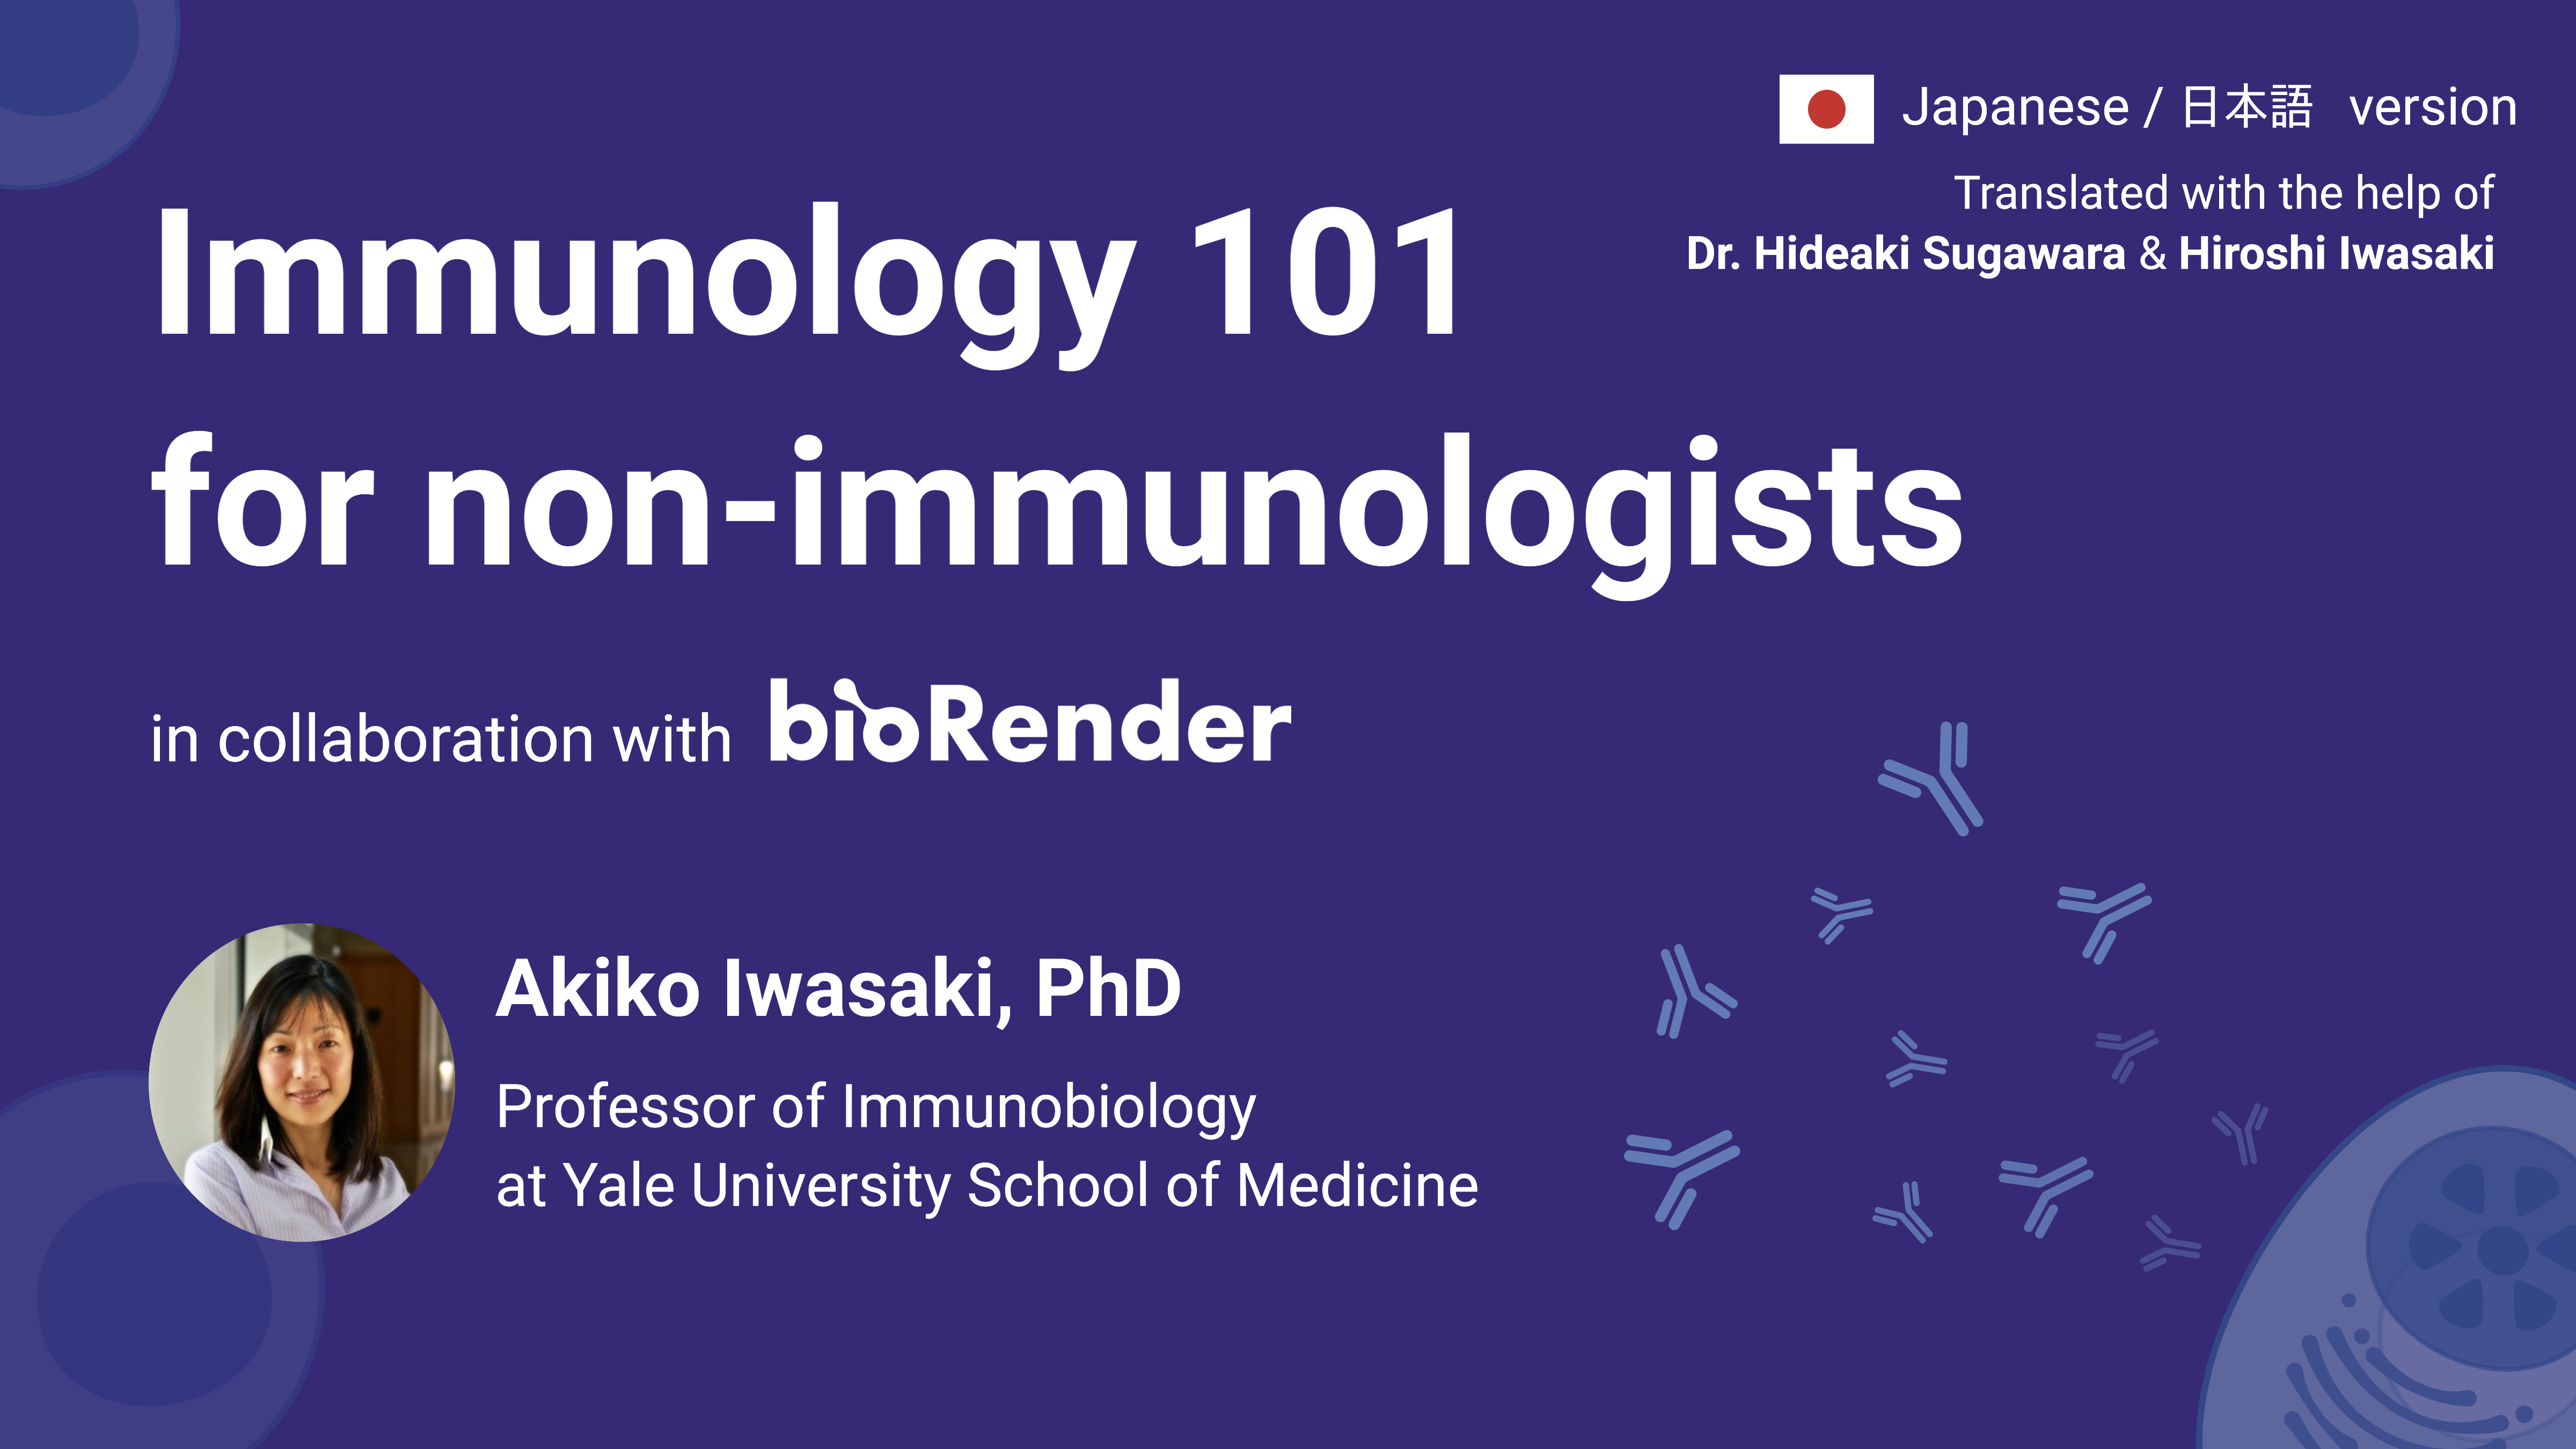 COVID-19 immunology 101 for non-immunologists by Akiko Iwasaki, Ph.D. (Japanese)